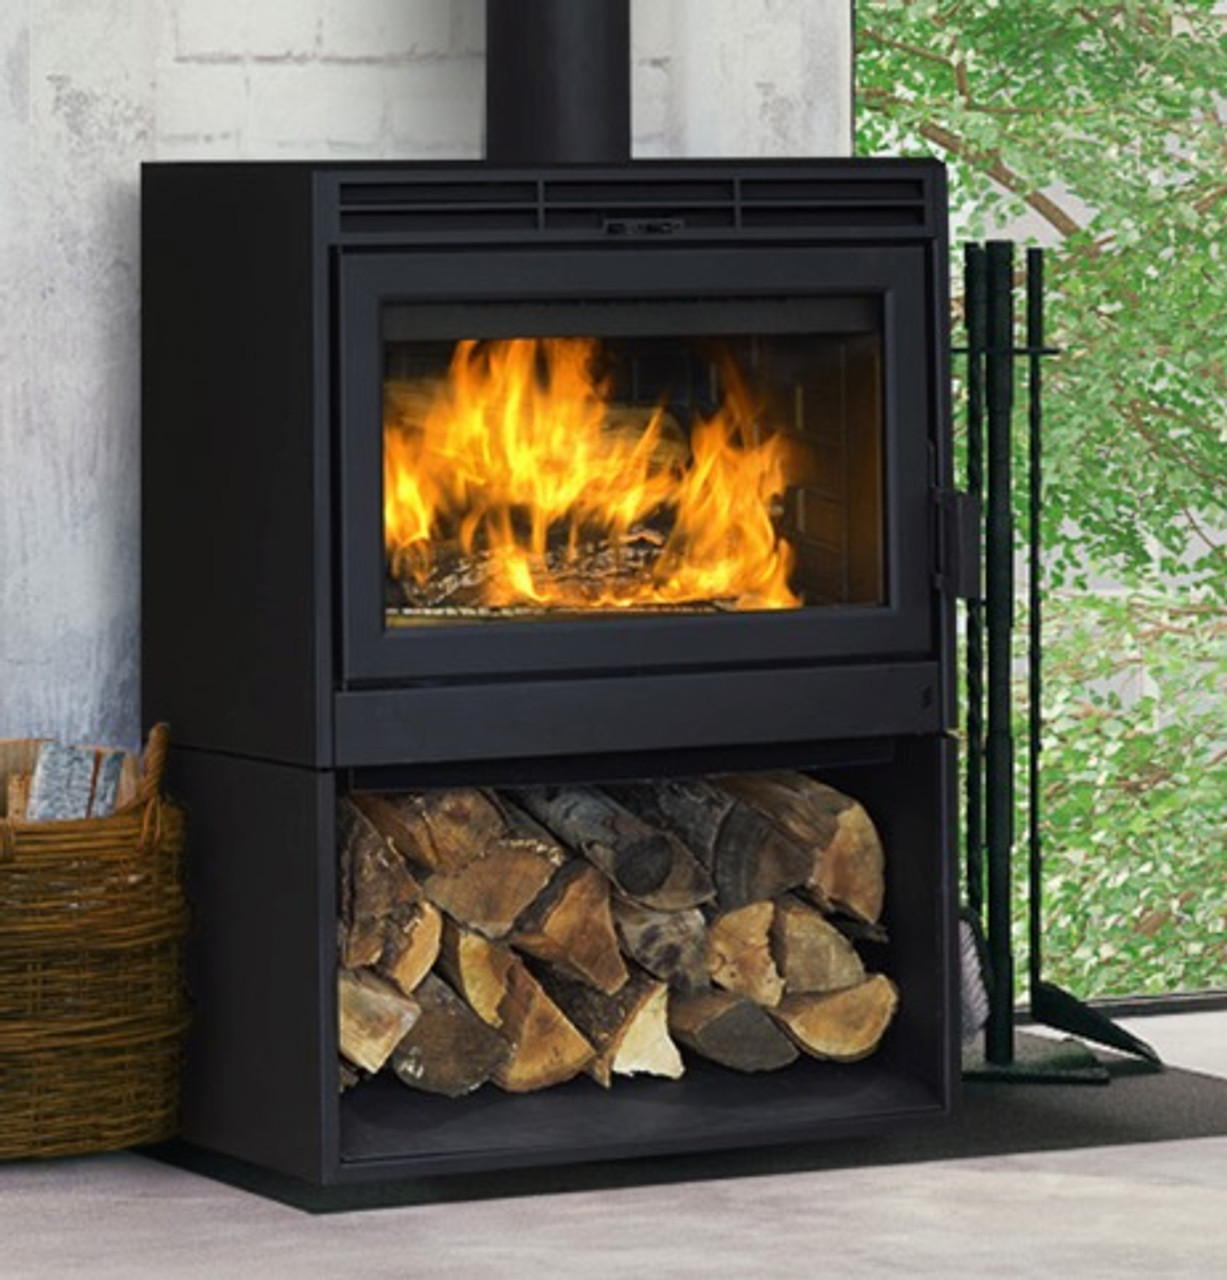 Wood Burning Fireplace For Sale Supreme Novo 24 Embers Living